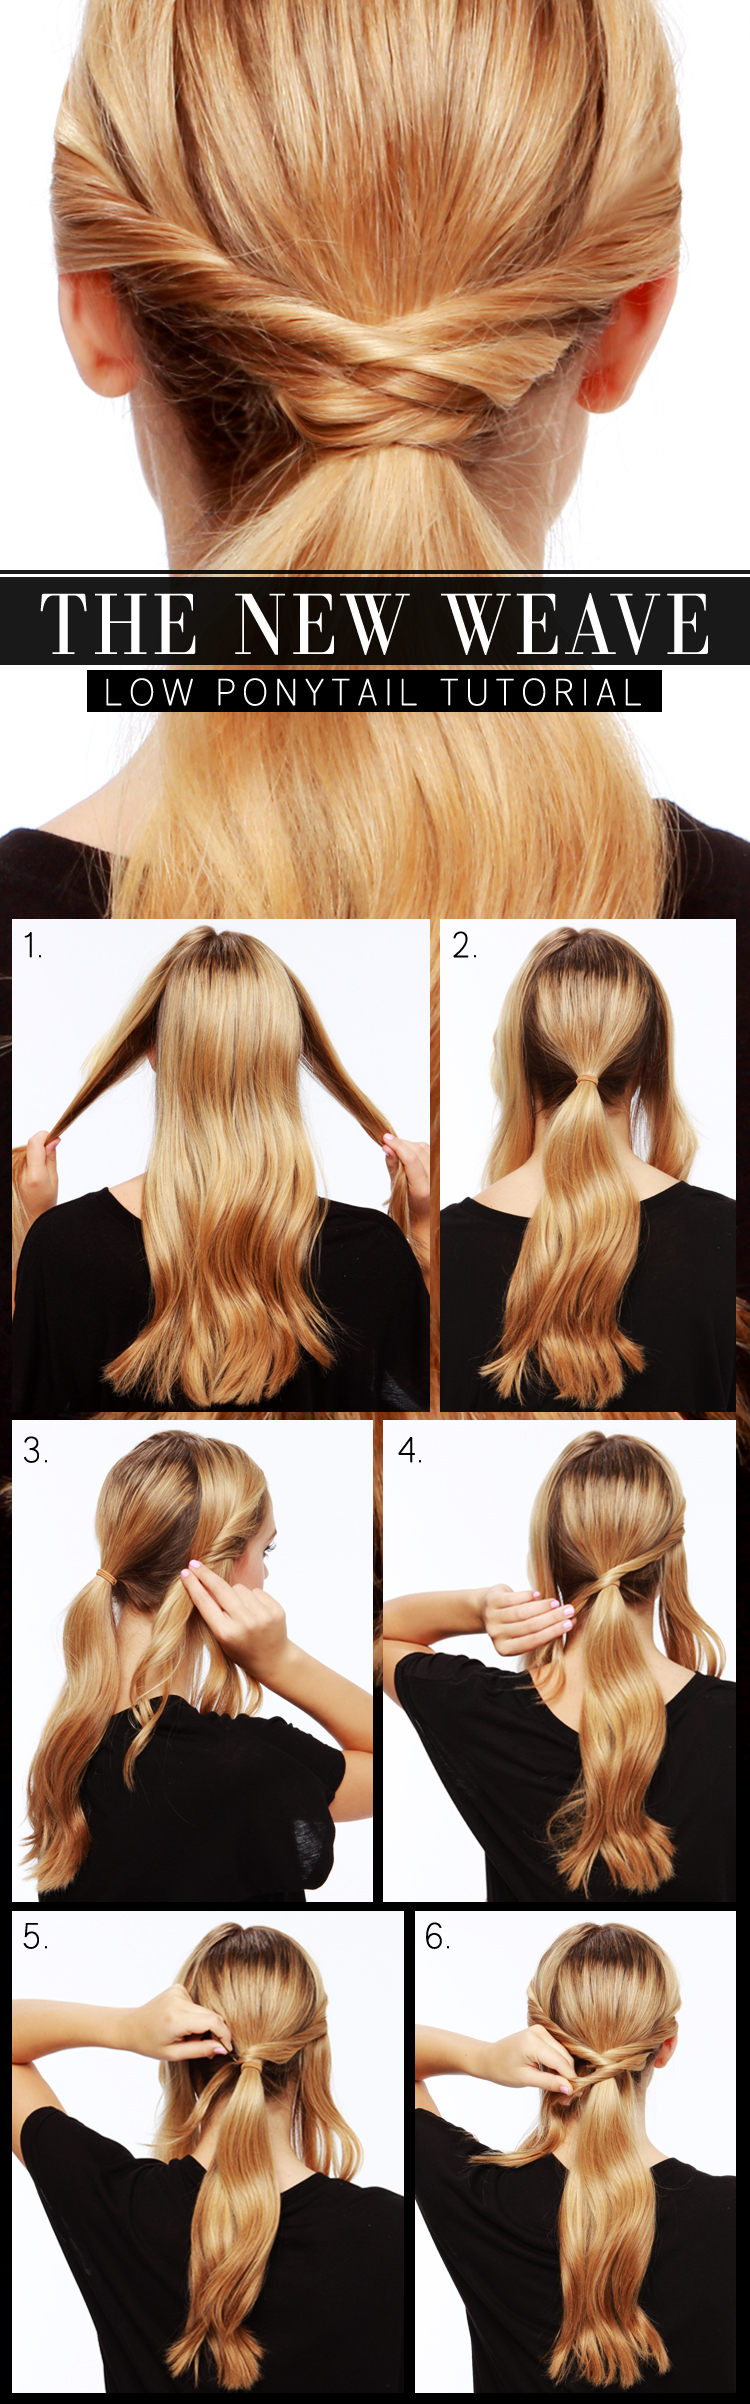 8-10-Quick-Back-To-School-Hairstyles